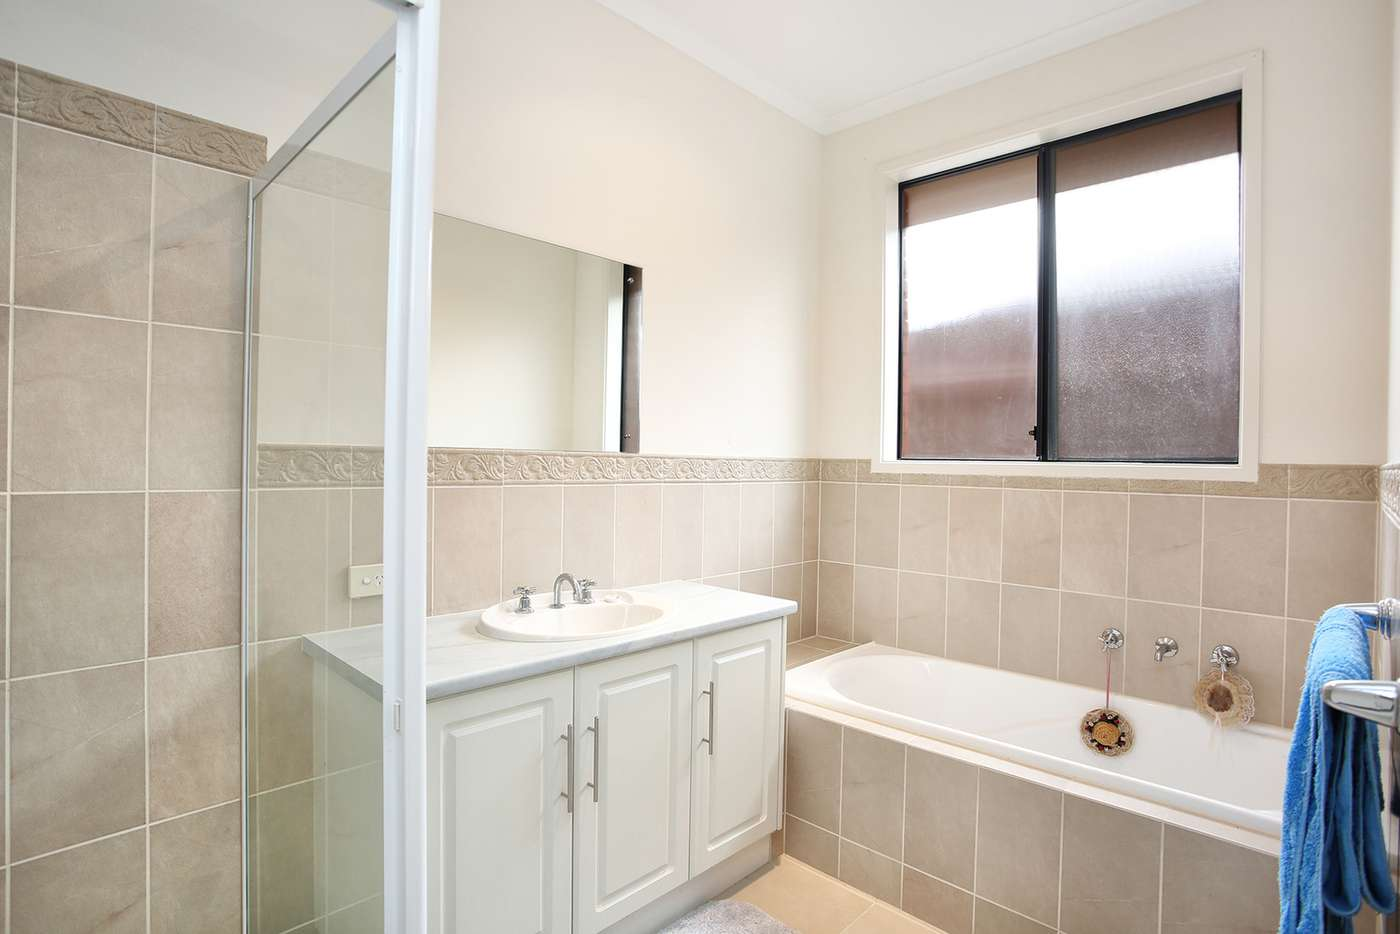 Sixth view of Homely house listing, 37 Dumfries Avenue, Northfield SA 5085